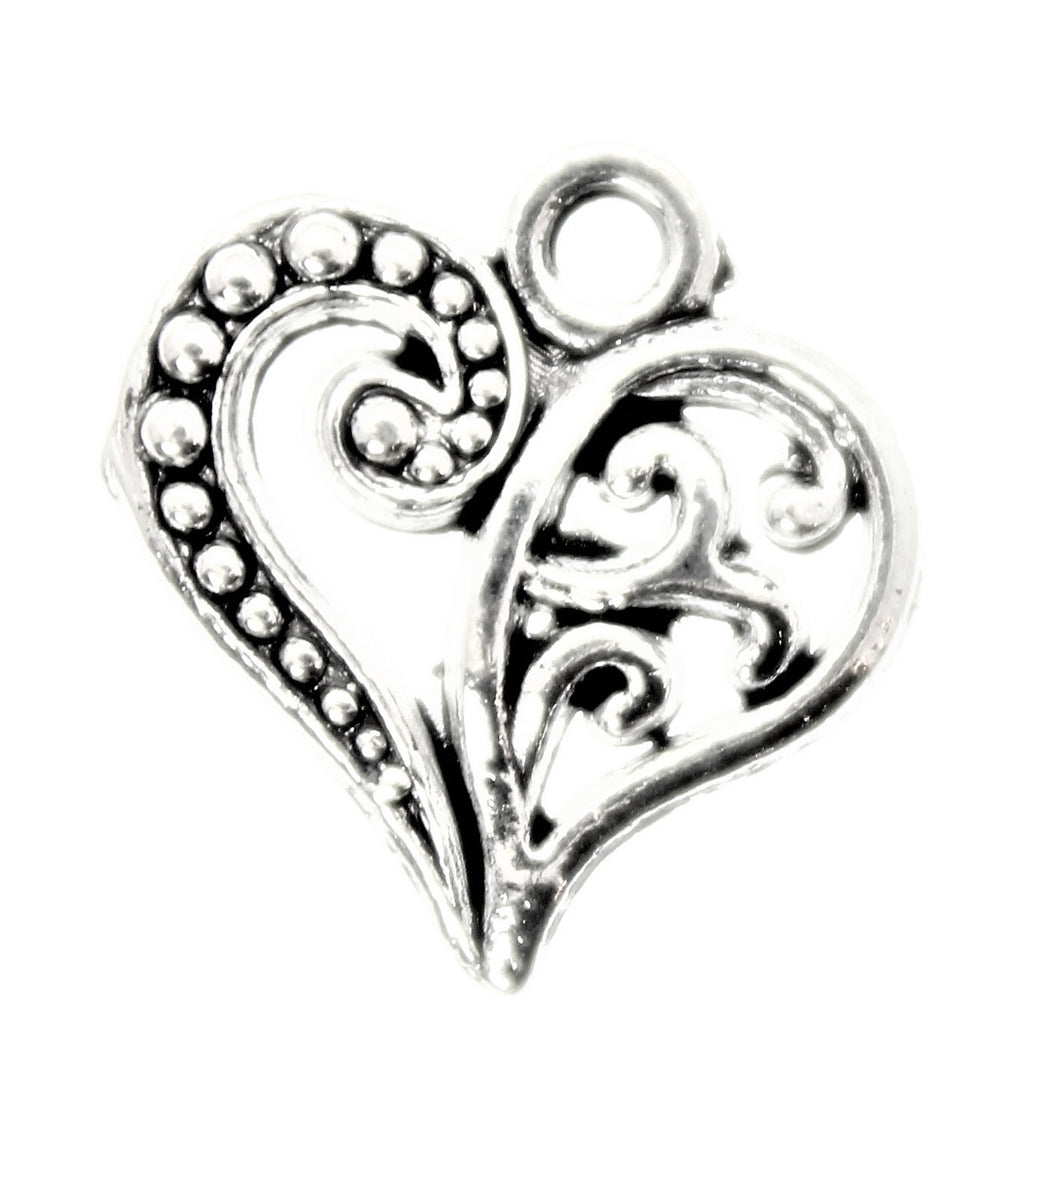 AVBeads Heart Charms Decorative Silver 13mm x 14mm CHM00125 100pcs